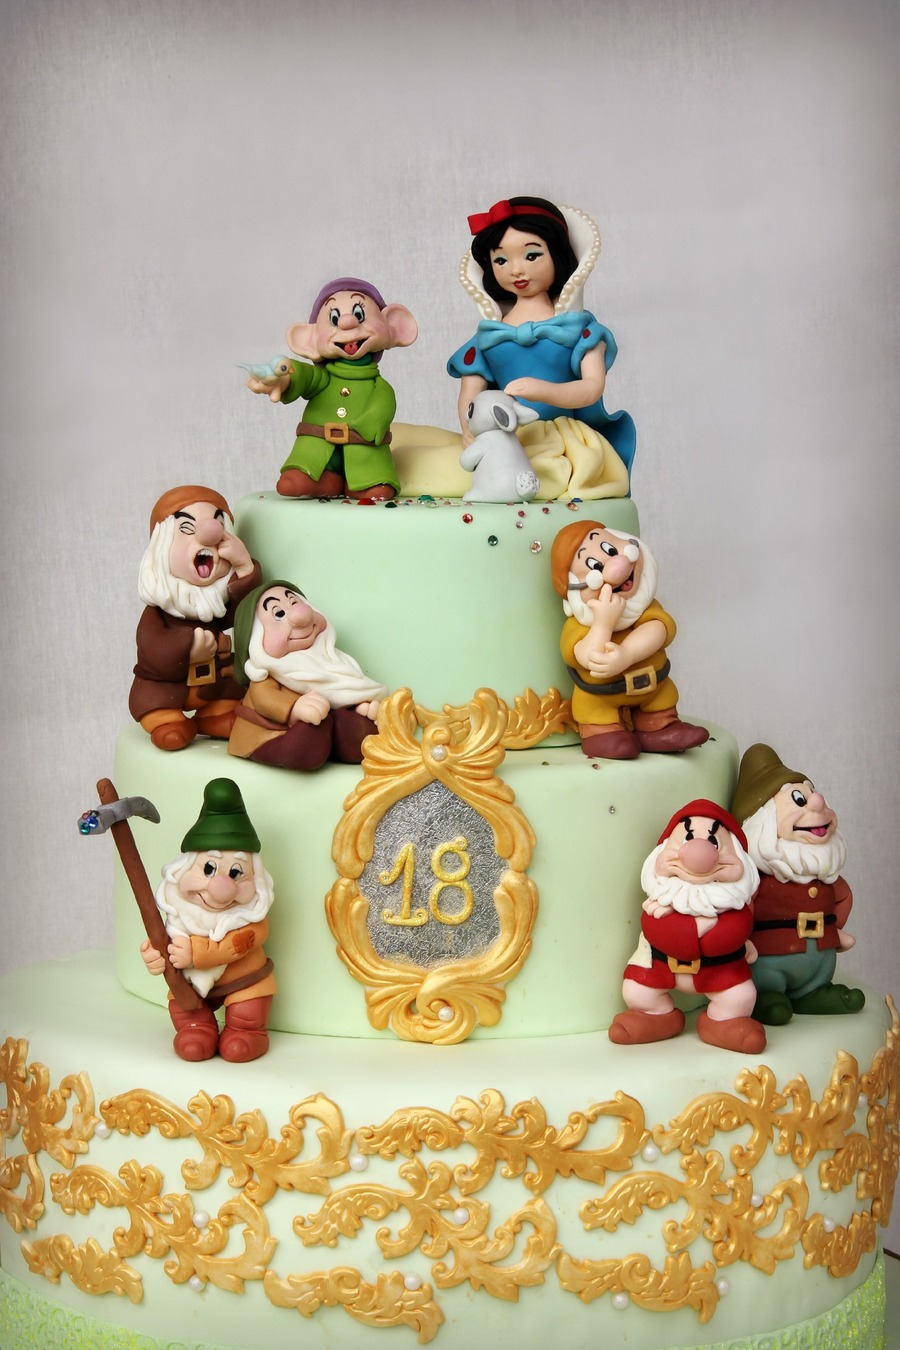 Snow White And The Seven Dwarfs on Cake Central